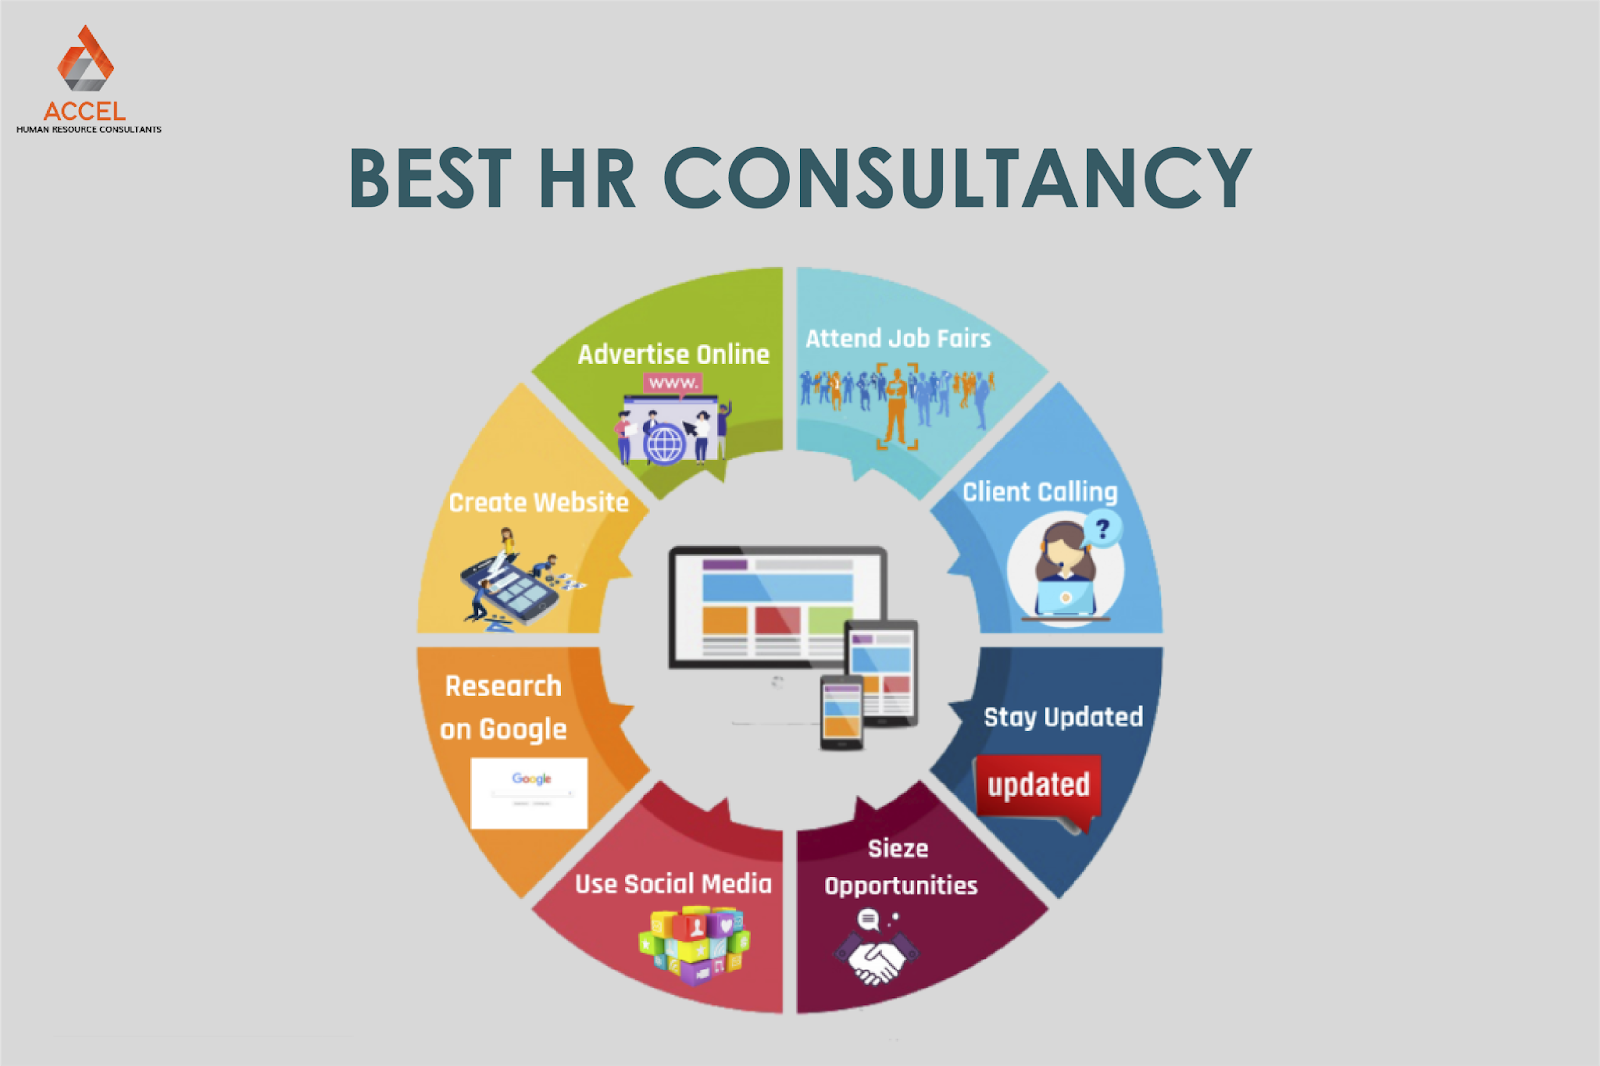 HR Consultancy Services in Dubai - 3 helpful tips for becoming the best HR consultancy